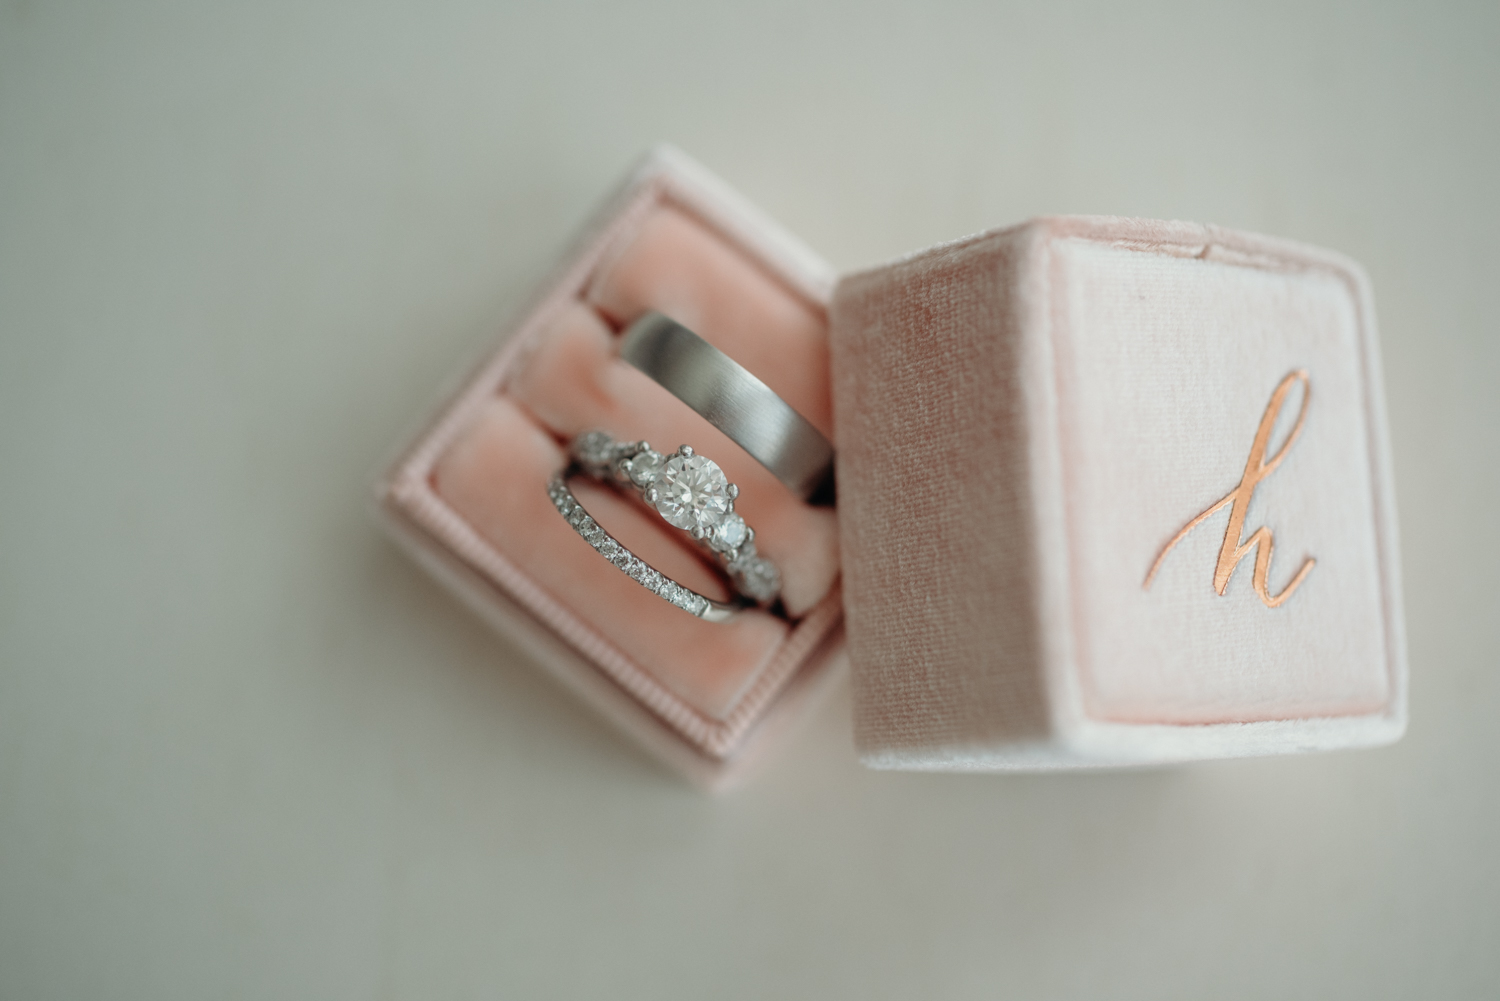 Weddings rings are held in a soft pink box for the bride and groom on their wedding day.